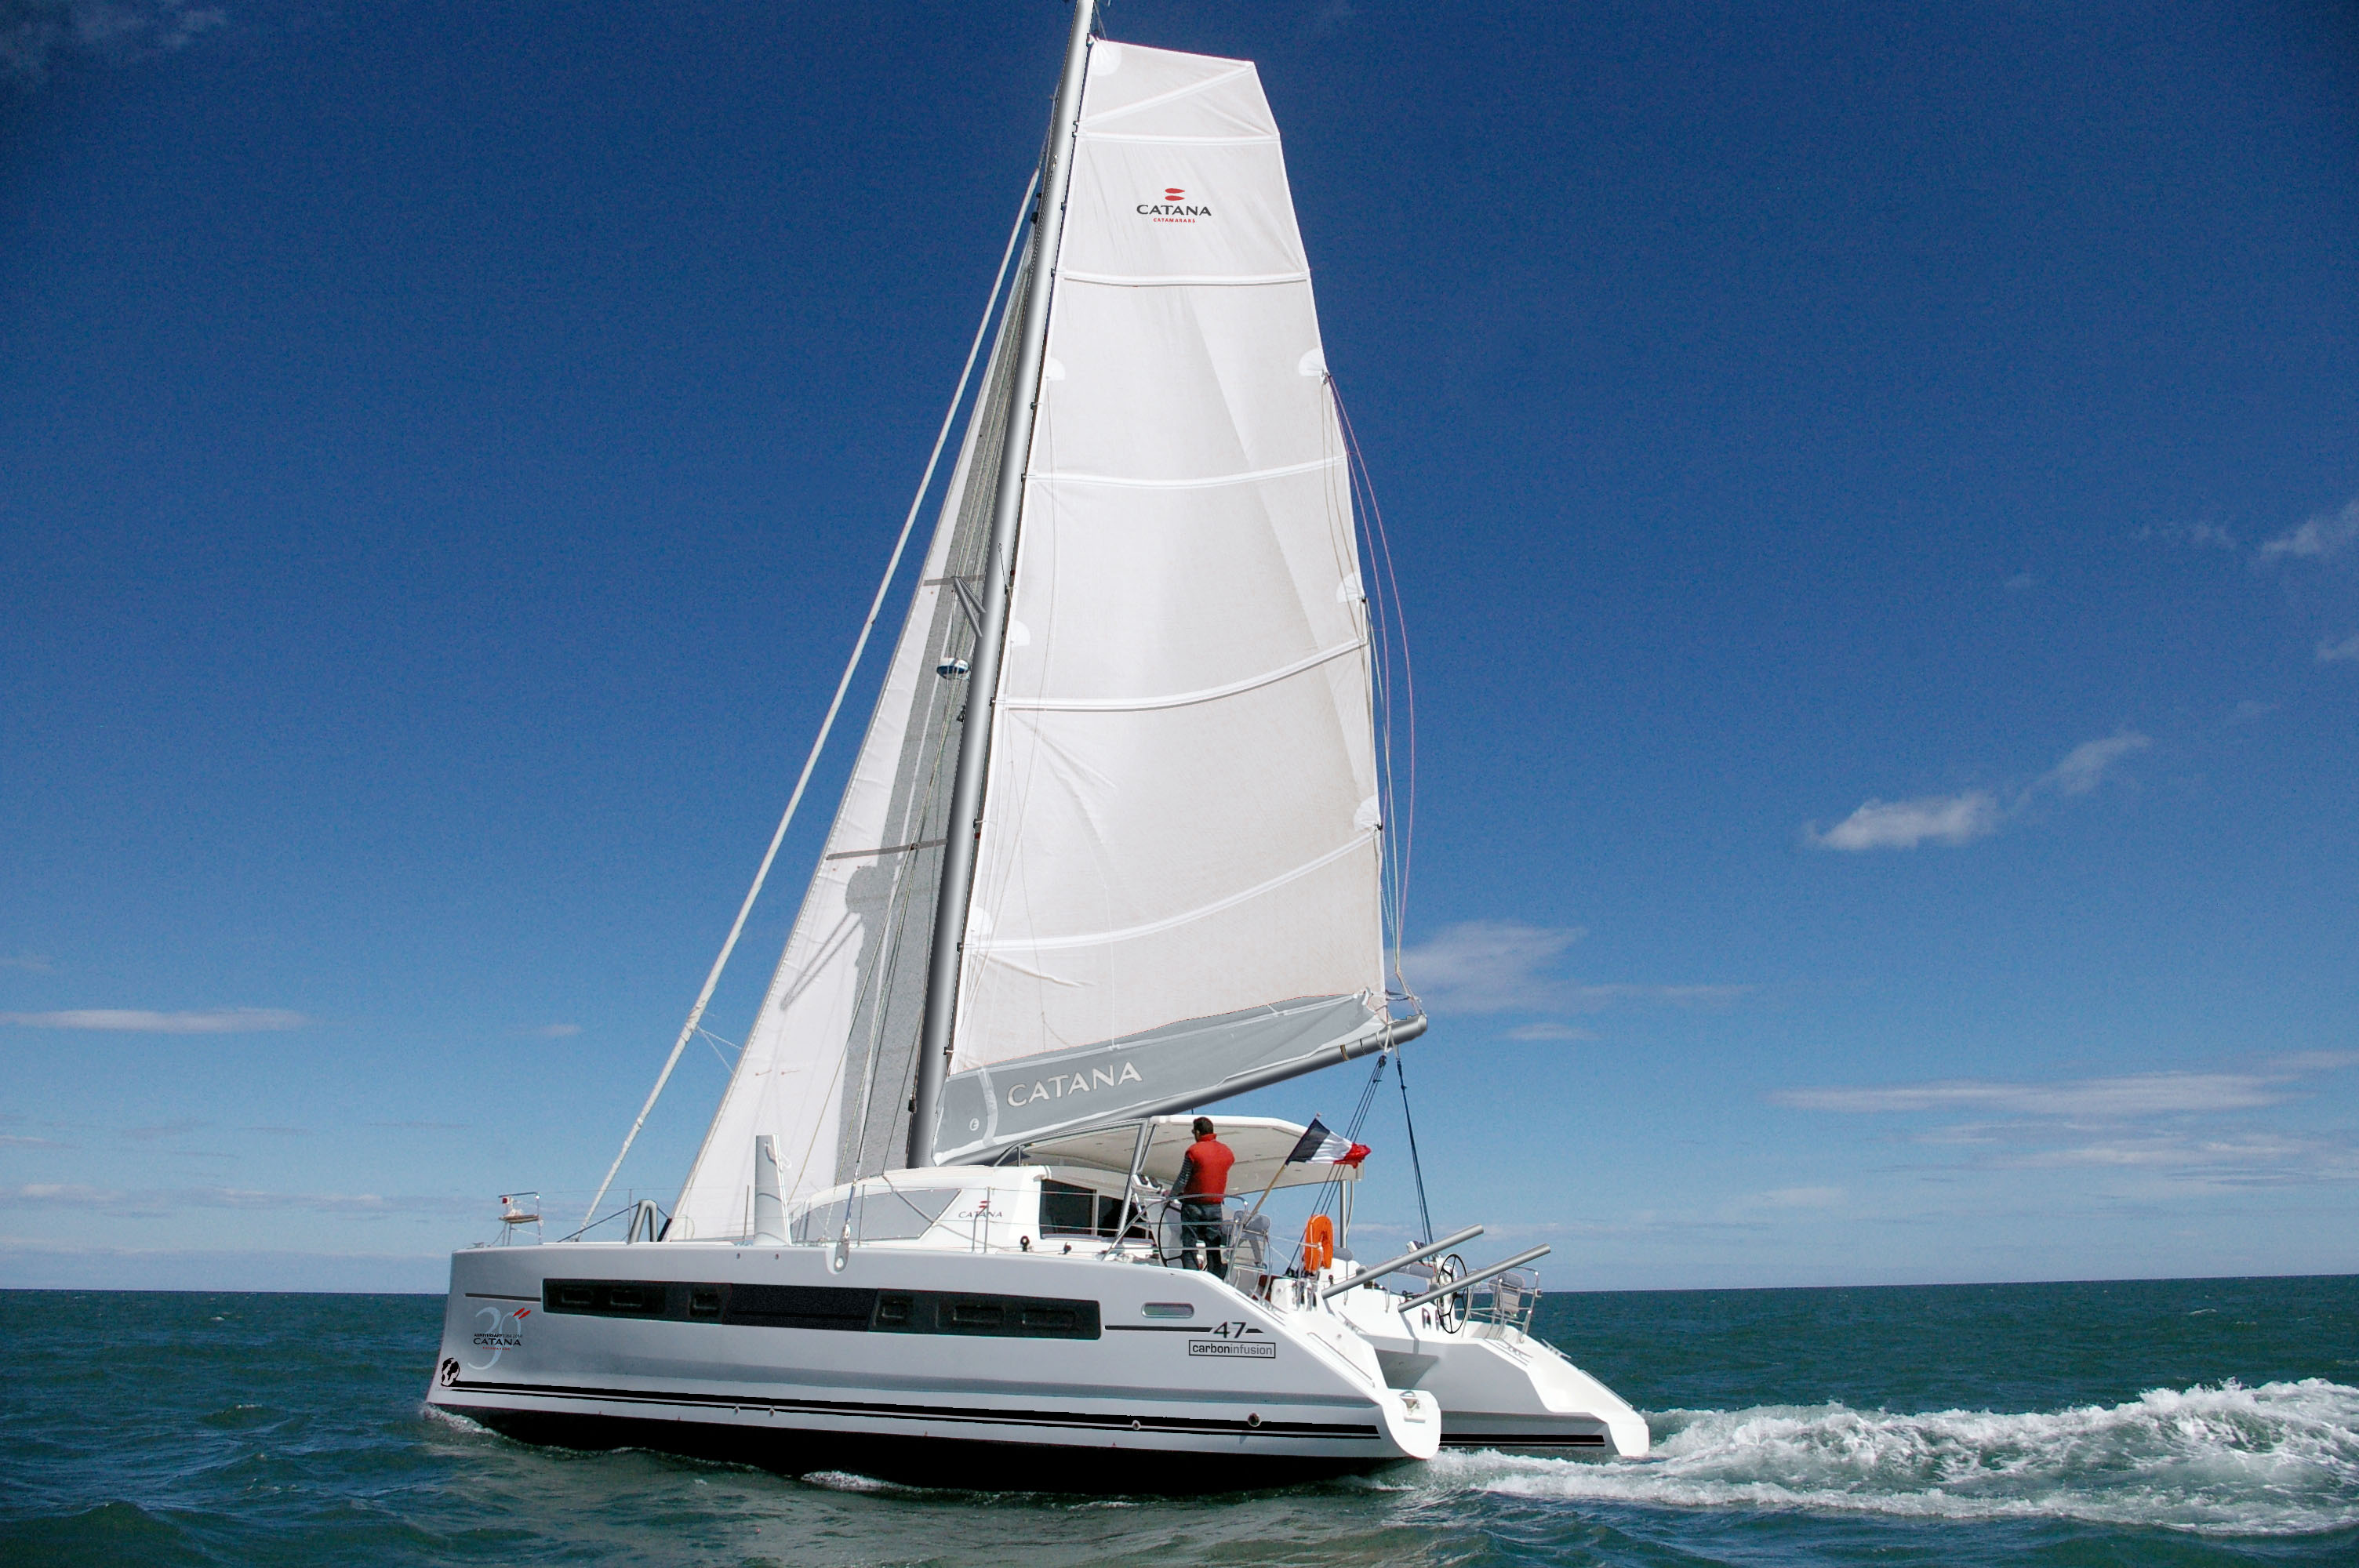 Sailboats In The Caribbean: Buying A Sailboat In The Caribbean